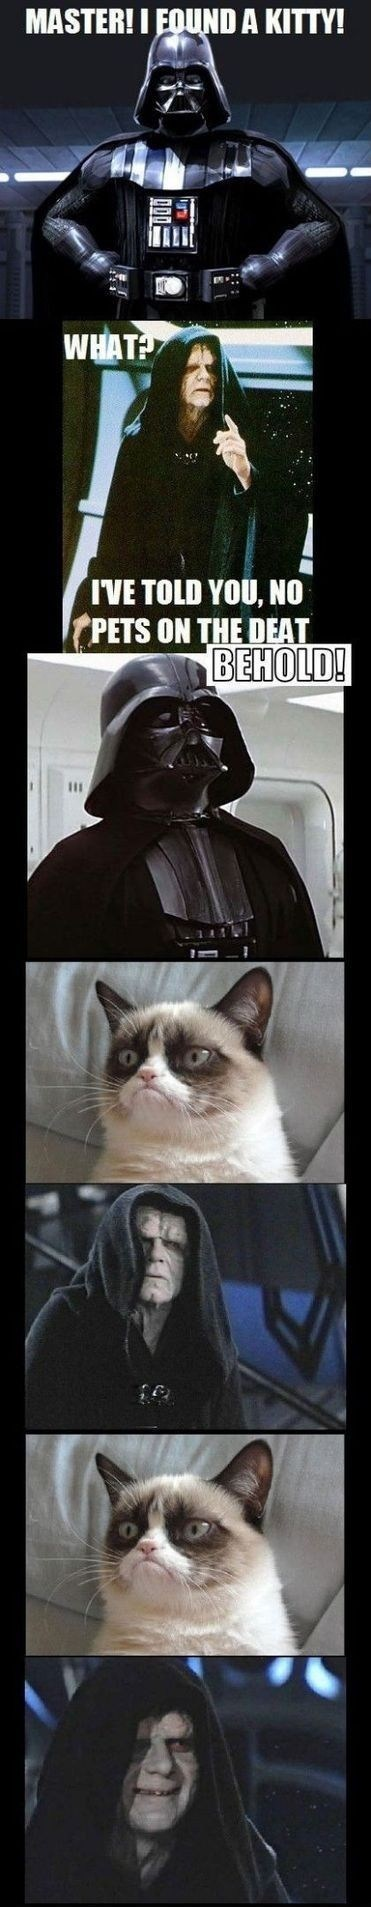 star wars Movie Grumpy Cat tard darth vader